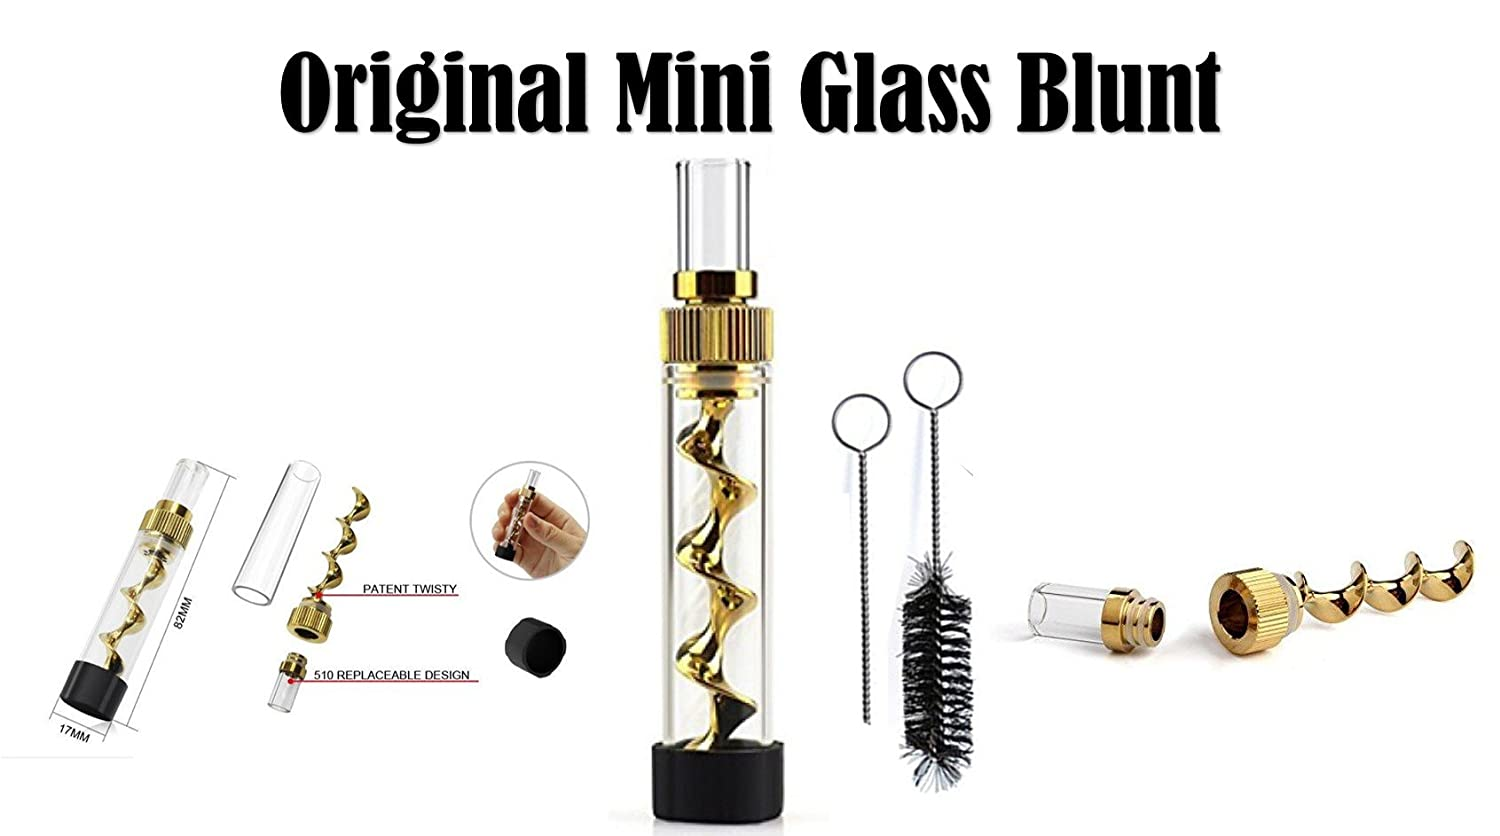 Glass Blunt Mini Glass Pipe, 3x More Compact Than it's Big Brother Glass Blunt Smoking Pipe 1 Twisty Glass Blunt Holds Up To 1 Gram of Pure Herb - 1 x Mini Glass Blunt, 1x Rubber Cap, 1x Cleaning Brush, 1x Cleaning Tool, Copper NOT Zinc Alloy, Does not re